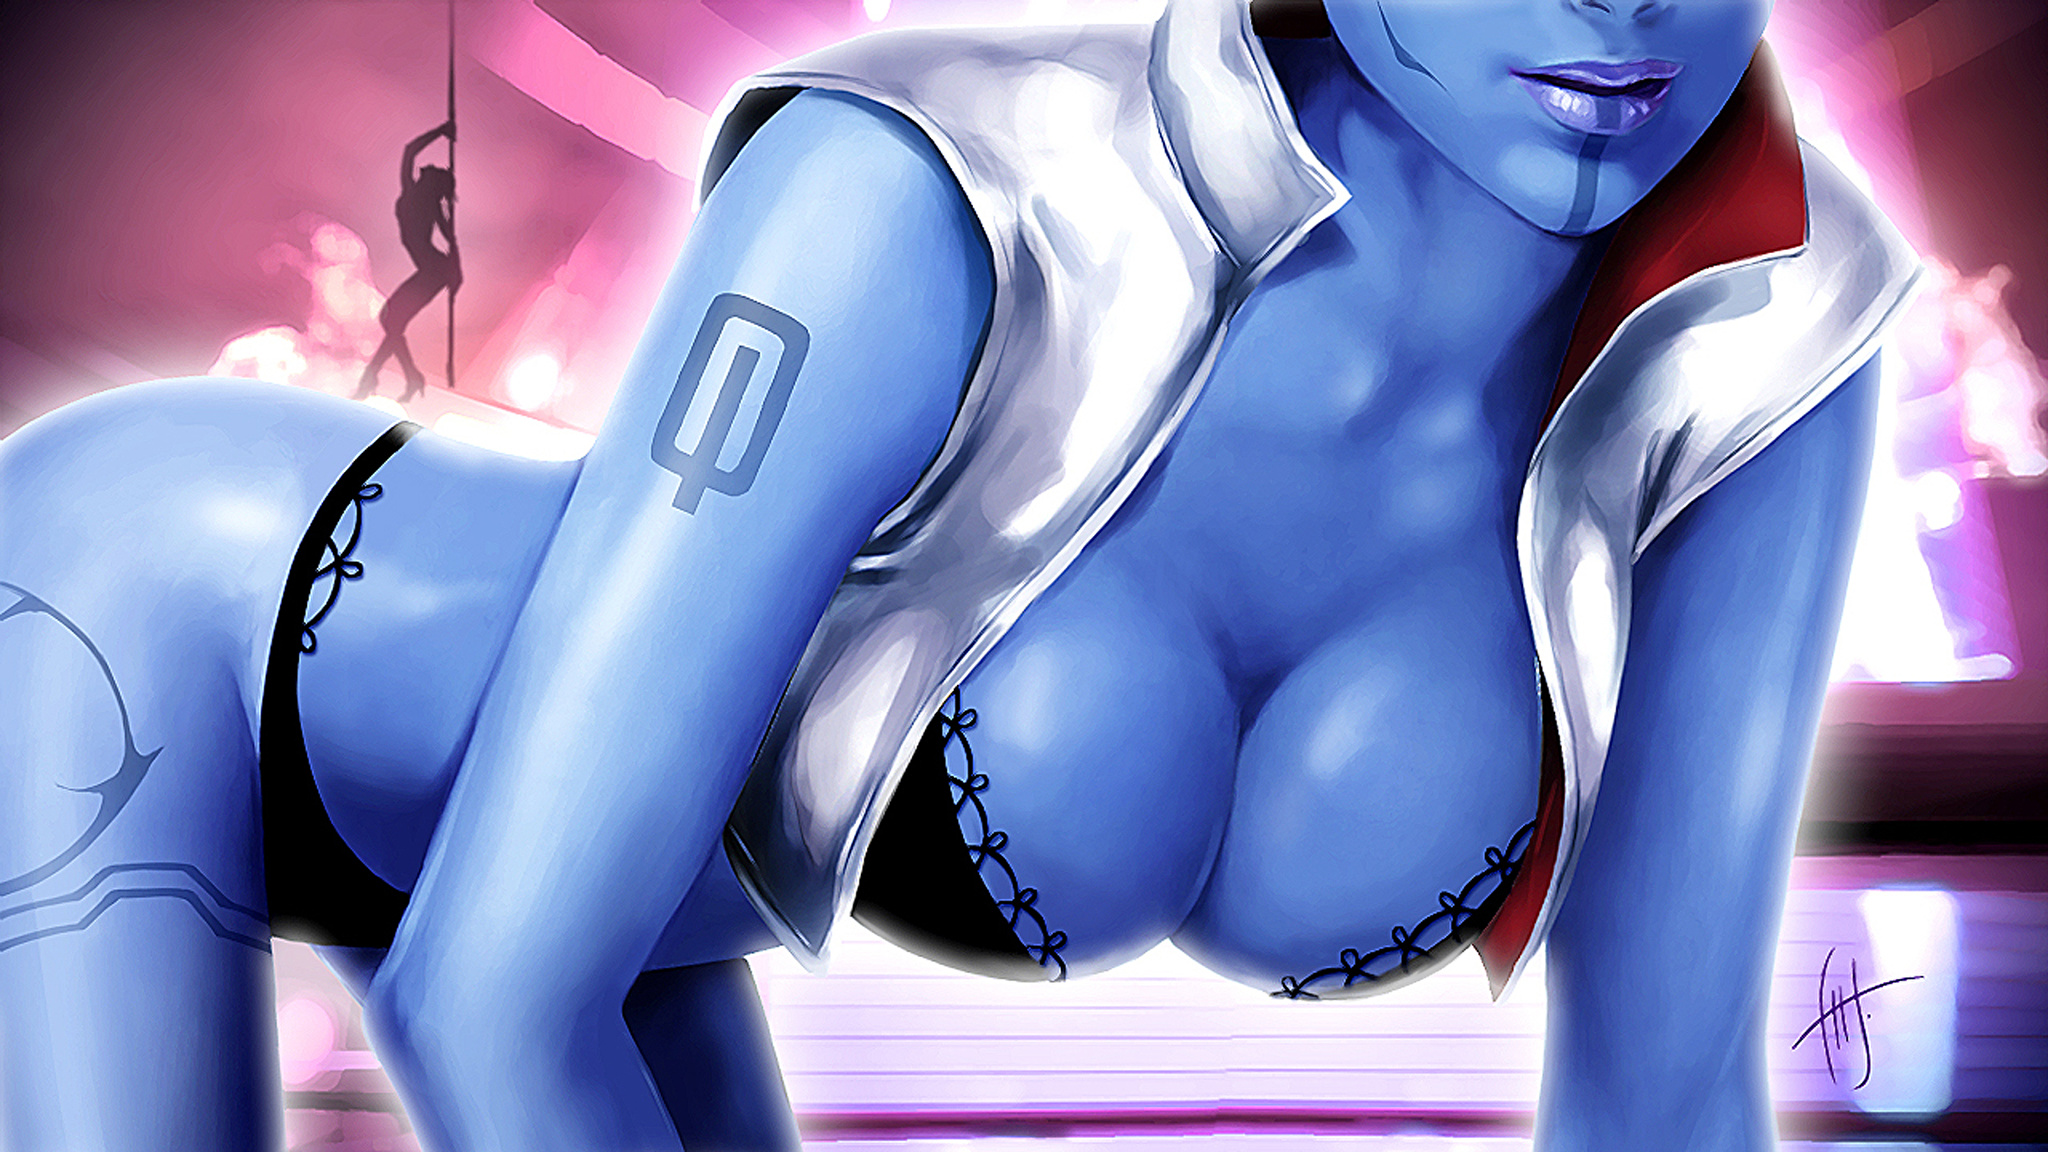 Free mass effect porn rule 34 hentai thumbs